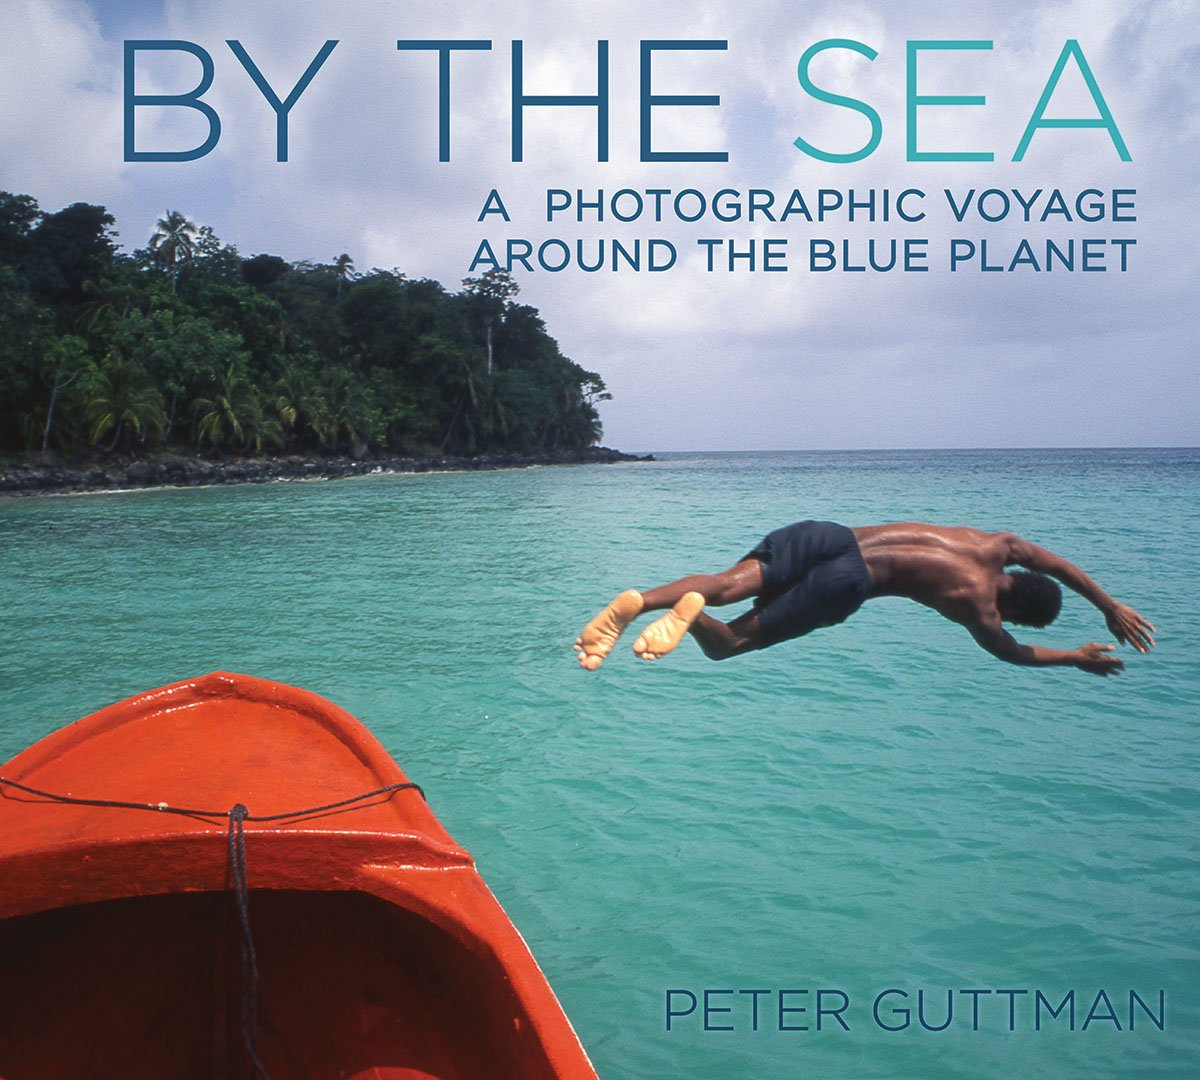 Image OfBy The Sea: A Photographic Voyage Around The Blue Planet